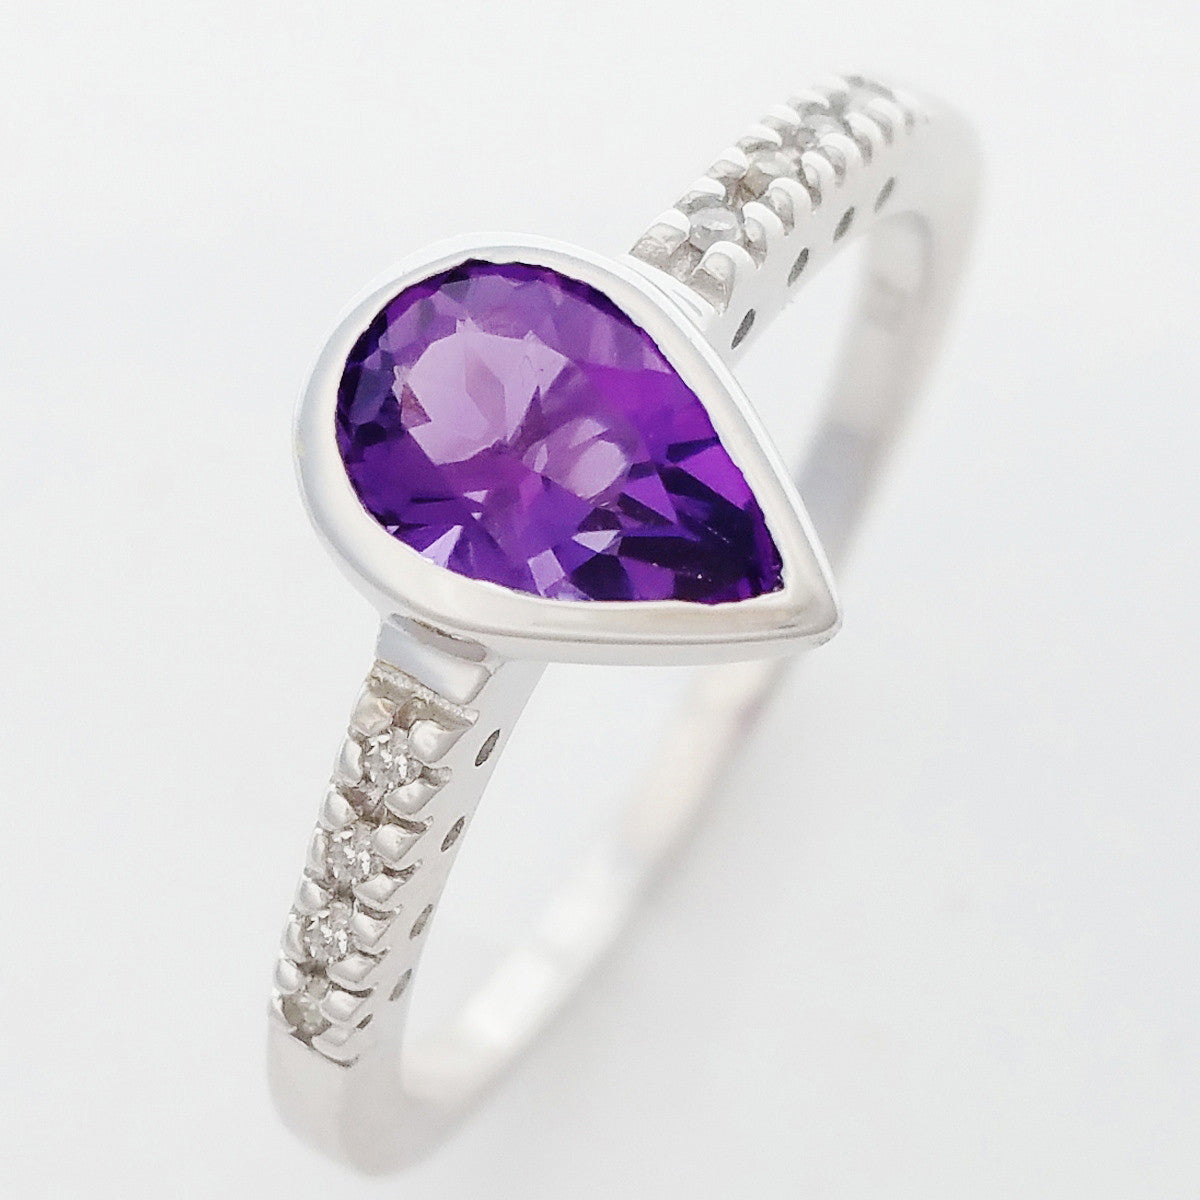 9K SOLID WHITE GOLD 0.70CT NATURAL PEAR CUT AMETHYST RING WITH 8 DIAMONDS.